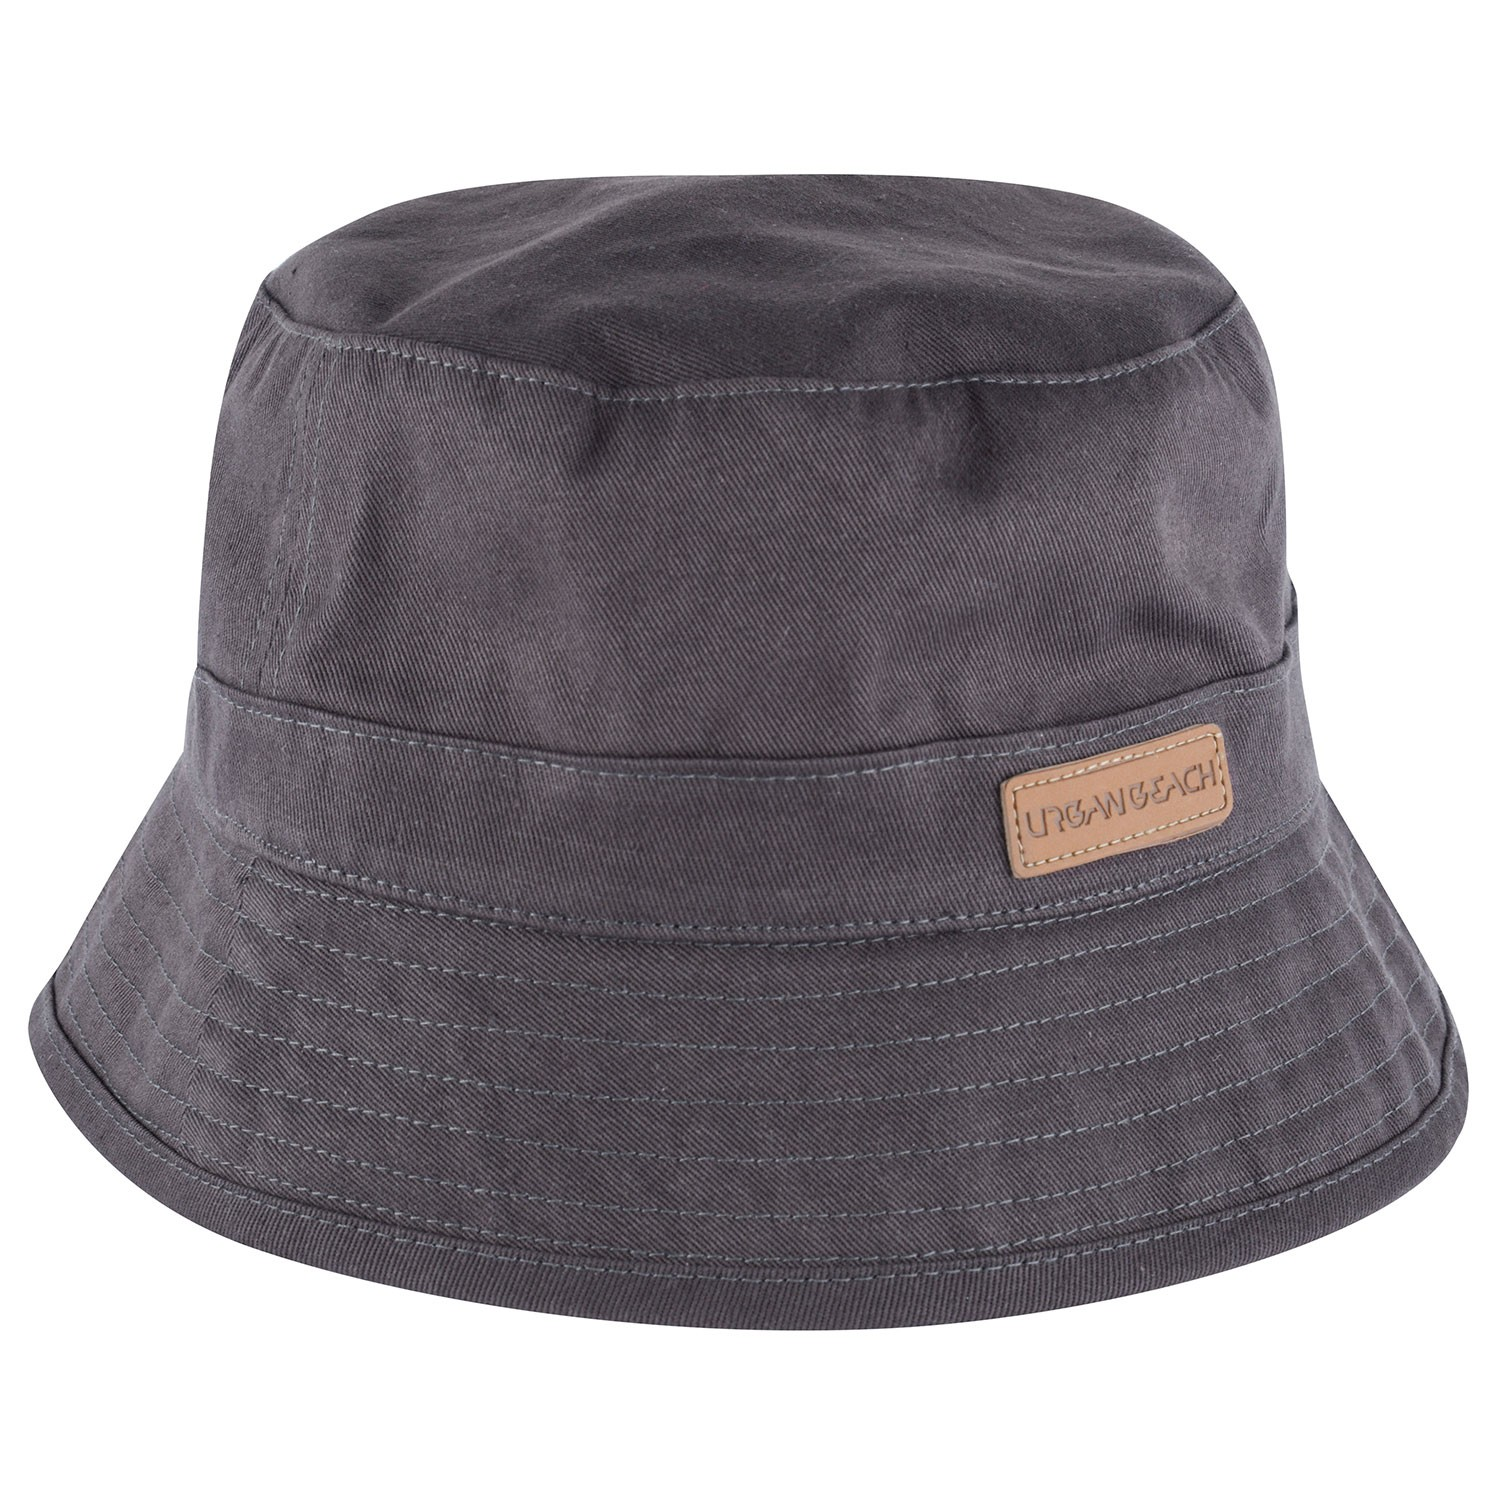 Grey Bucket Hat Hilo- Free Delivery Over £20 - Urban Beach addac388a86